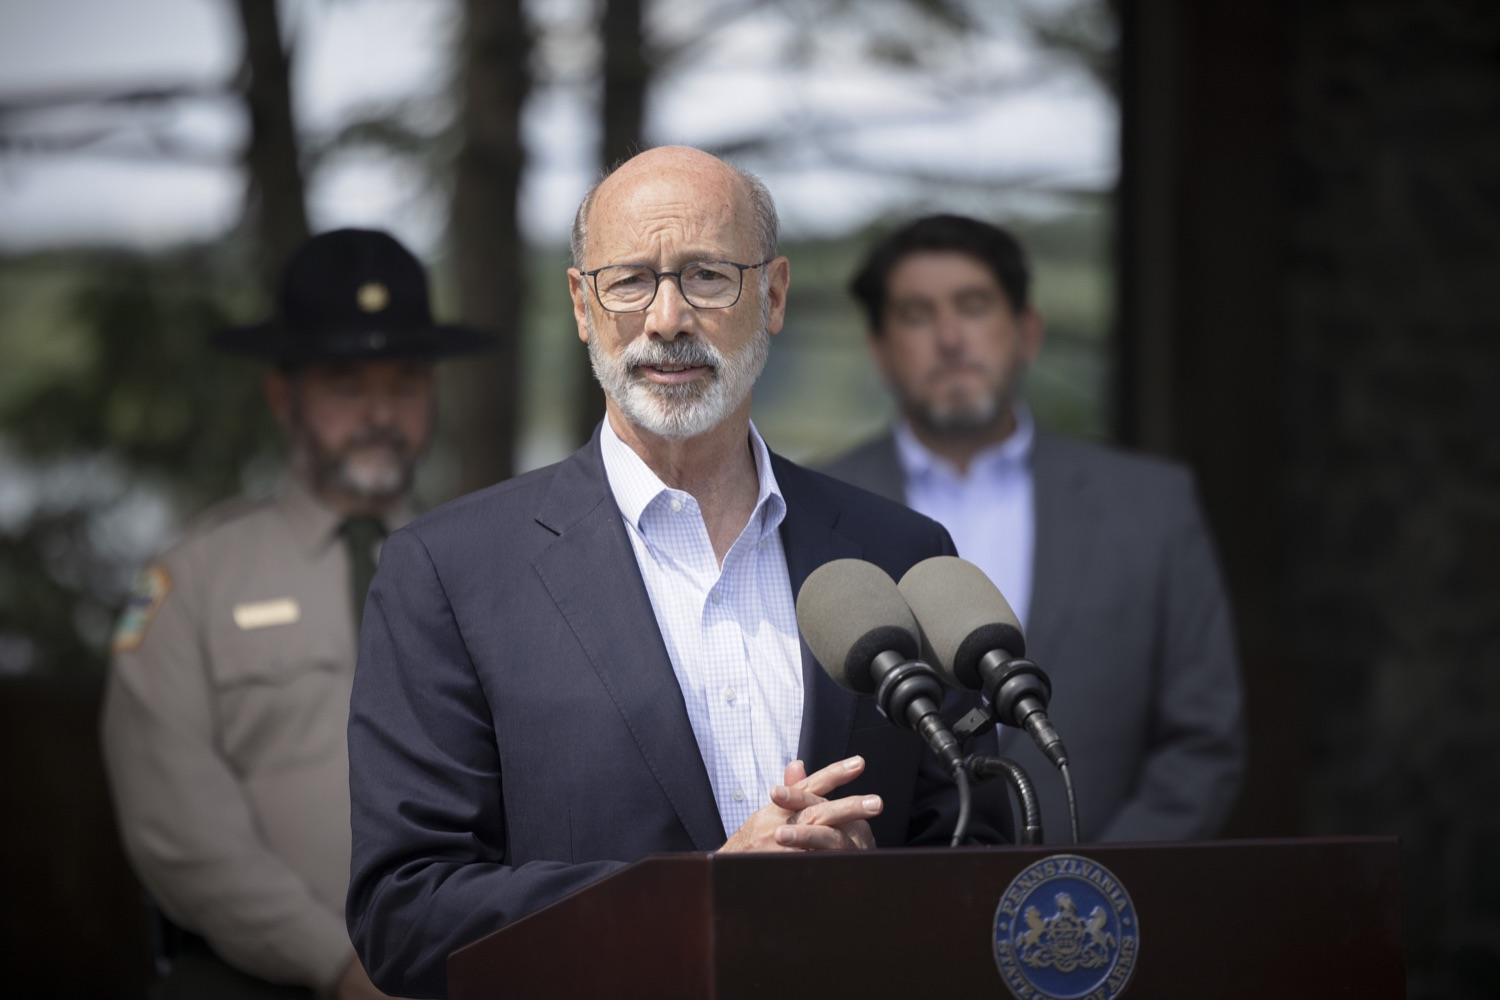 """<a href=""""https://filesource.wostreaming.net/commonwealthofpa/photo/19111_gov_parkVaccines_dz_008.jpg"""" target=""""_blank"""">⇣Download Photo<br></a>Pennsylvania Governor Tom Wolf speaking with the press.  Governor Tom Wolf today announced that the Department of Health (DOH) and Department of Conservation and Natural Resources (DCNR) are partnering to hold COVID-19 vaccine clinics at five state parks across the commonwealth to help expand access to the COVID-19 vaccine.  Harrisburg, PA -- September 10, 2021"""